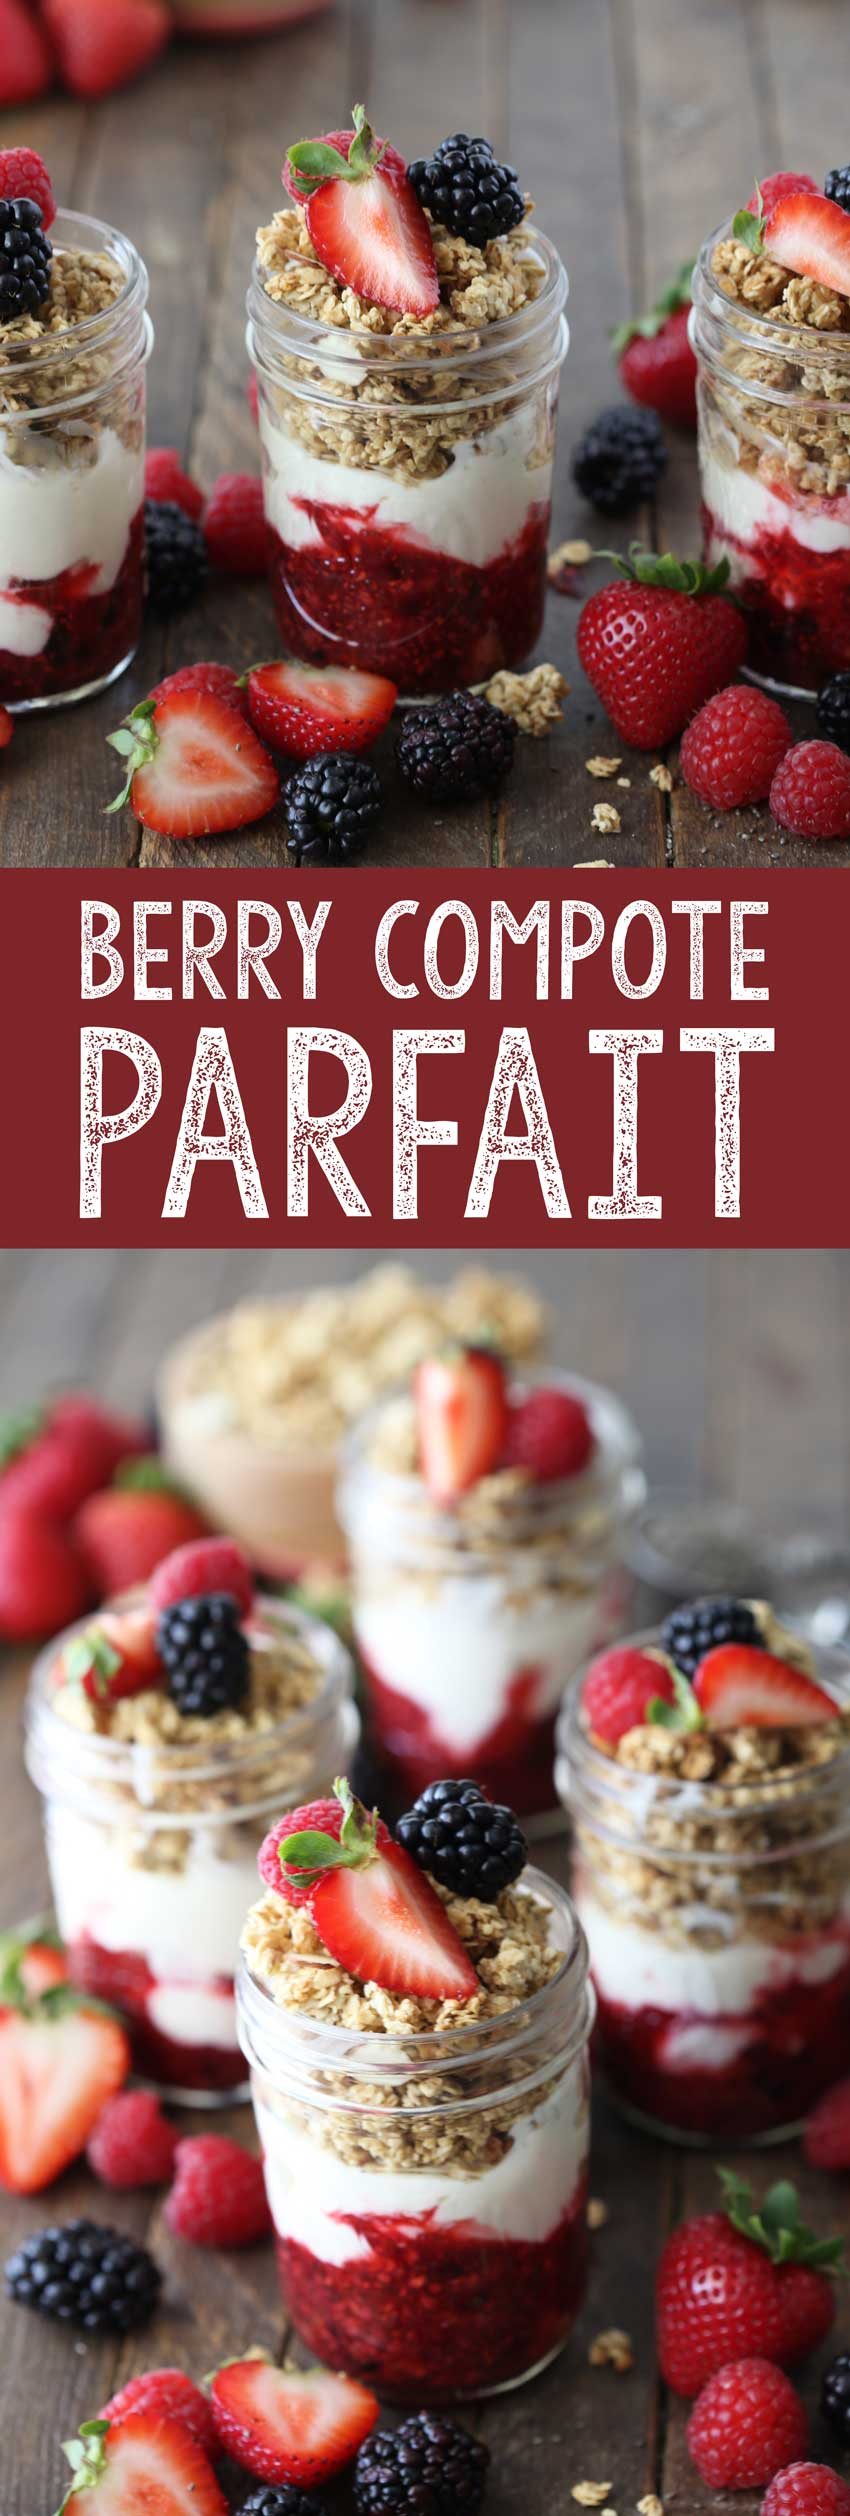 Berry Compote Parfait is a sweet and nutritious breakfast, snack, or dessert!